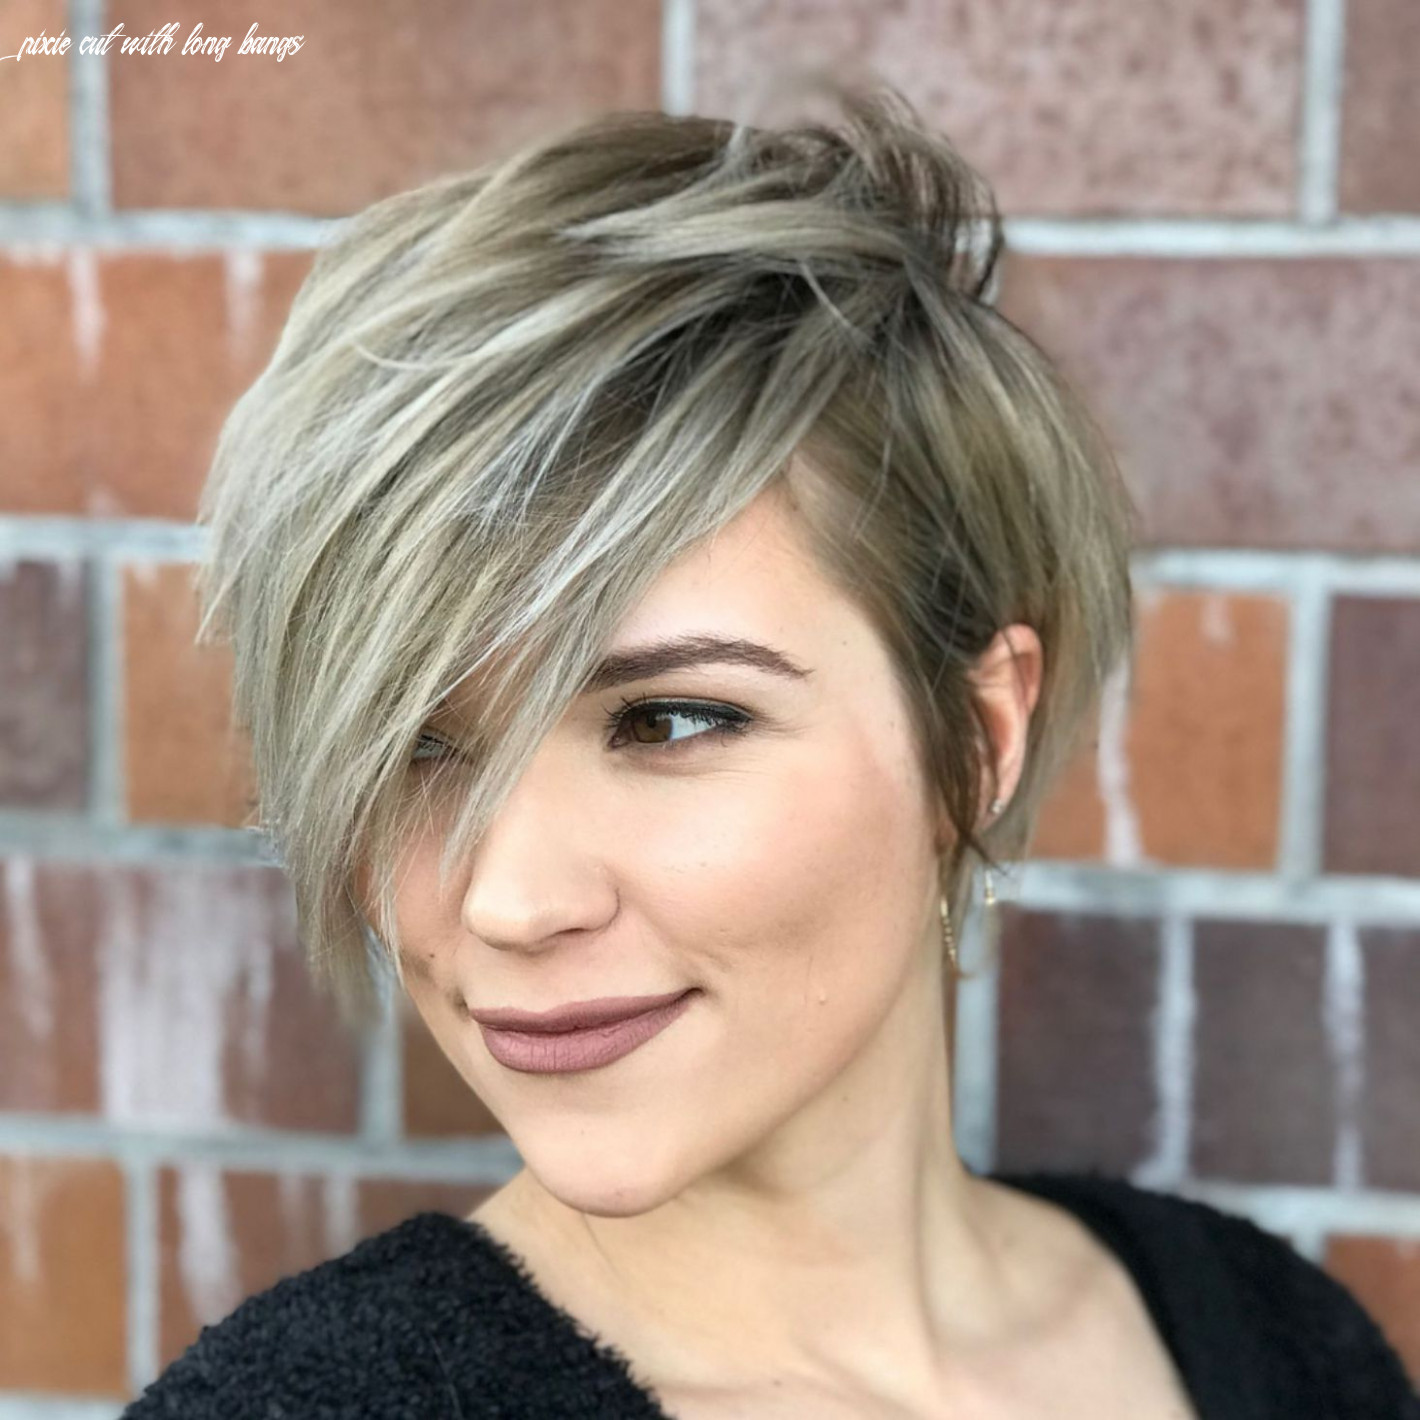 Pin on hair and nails pixie cut with long bangs